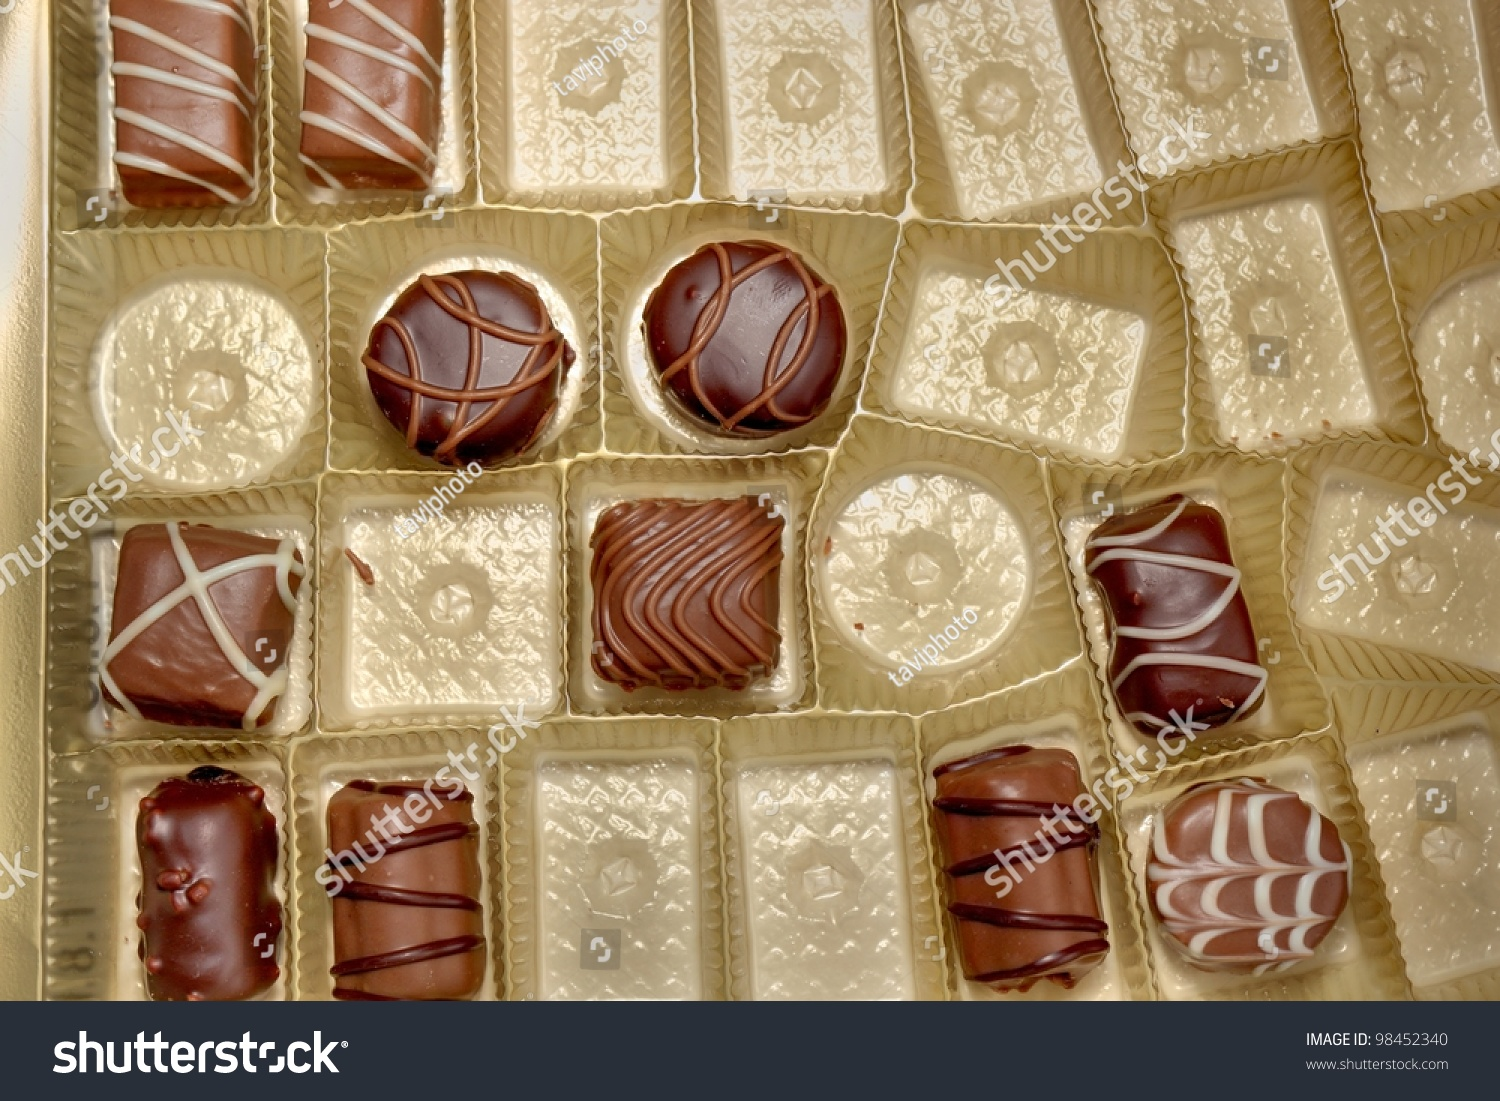 Different Types Chocolate Candies Candy Box Stock Photo 98452340 ...